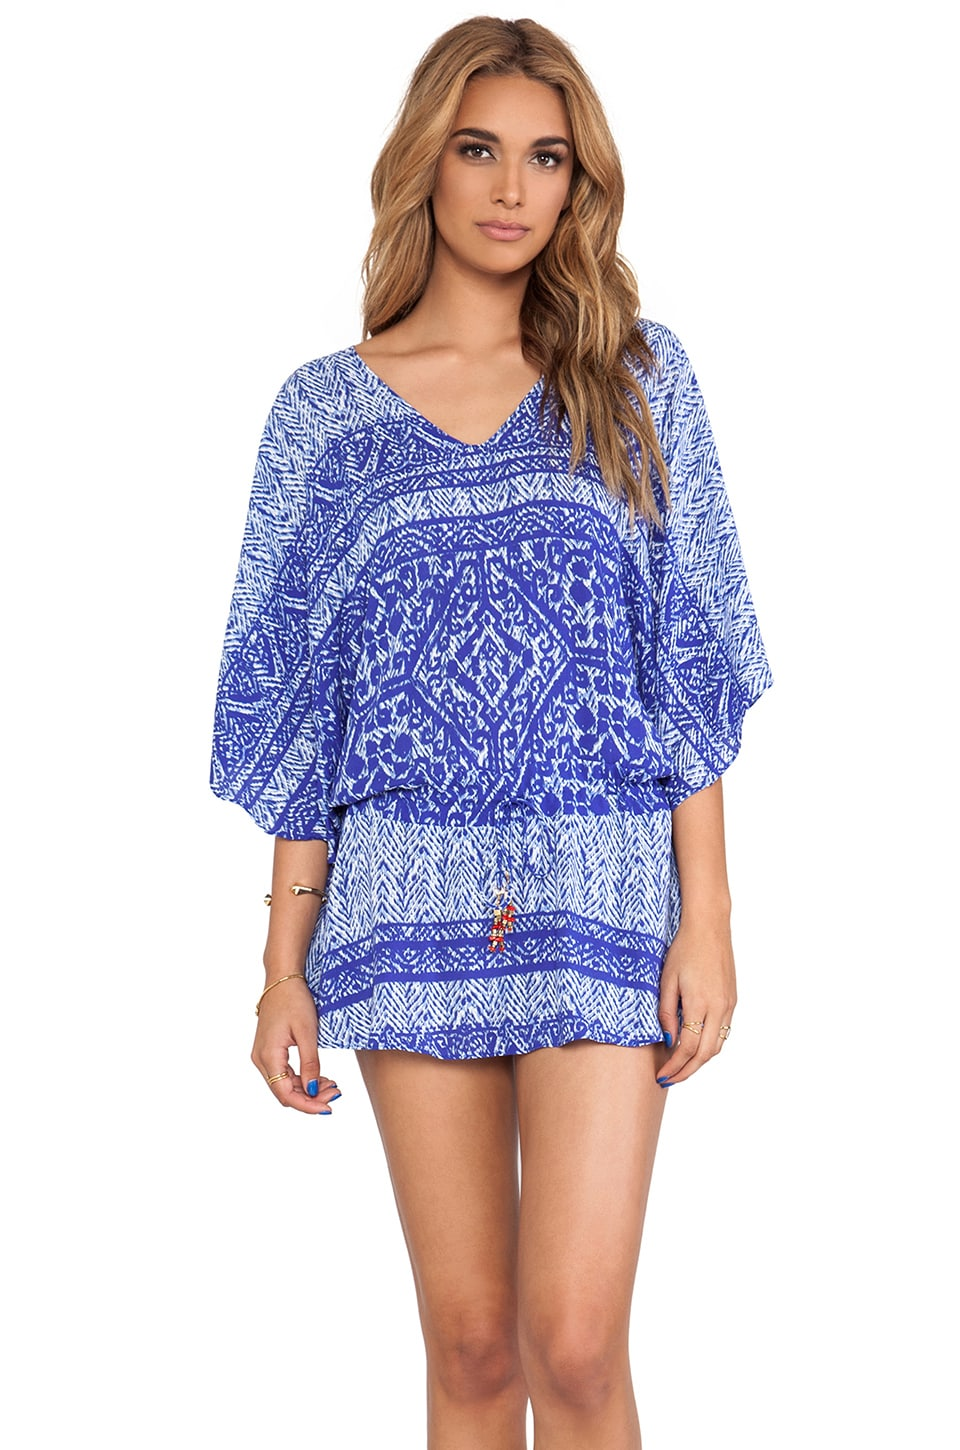 Vix Swimwear Carioca Vintage Tunic in Blue